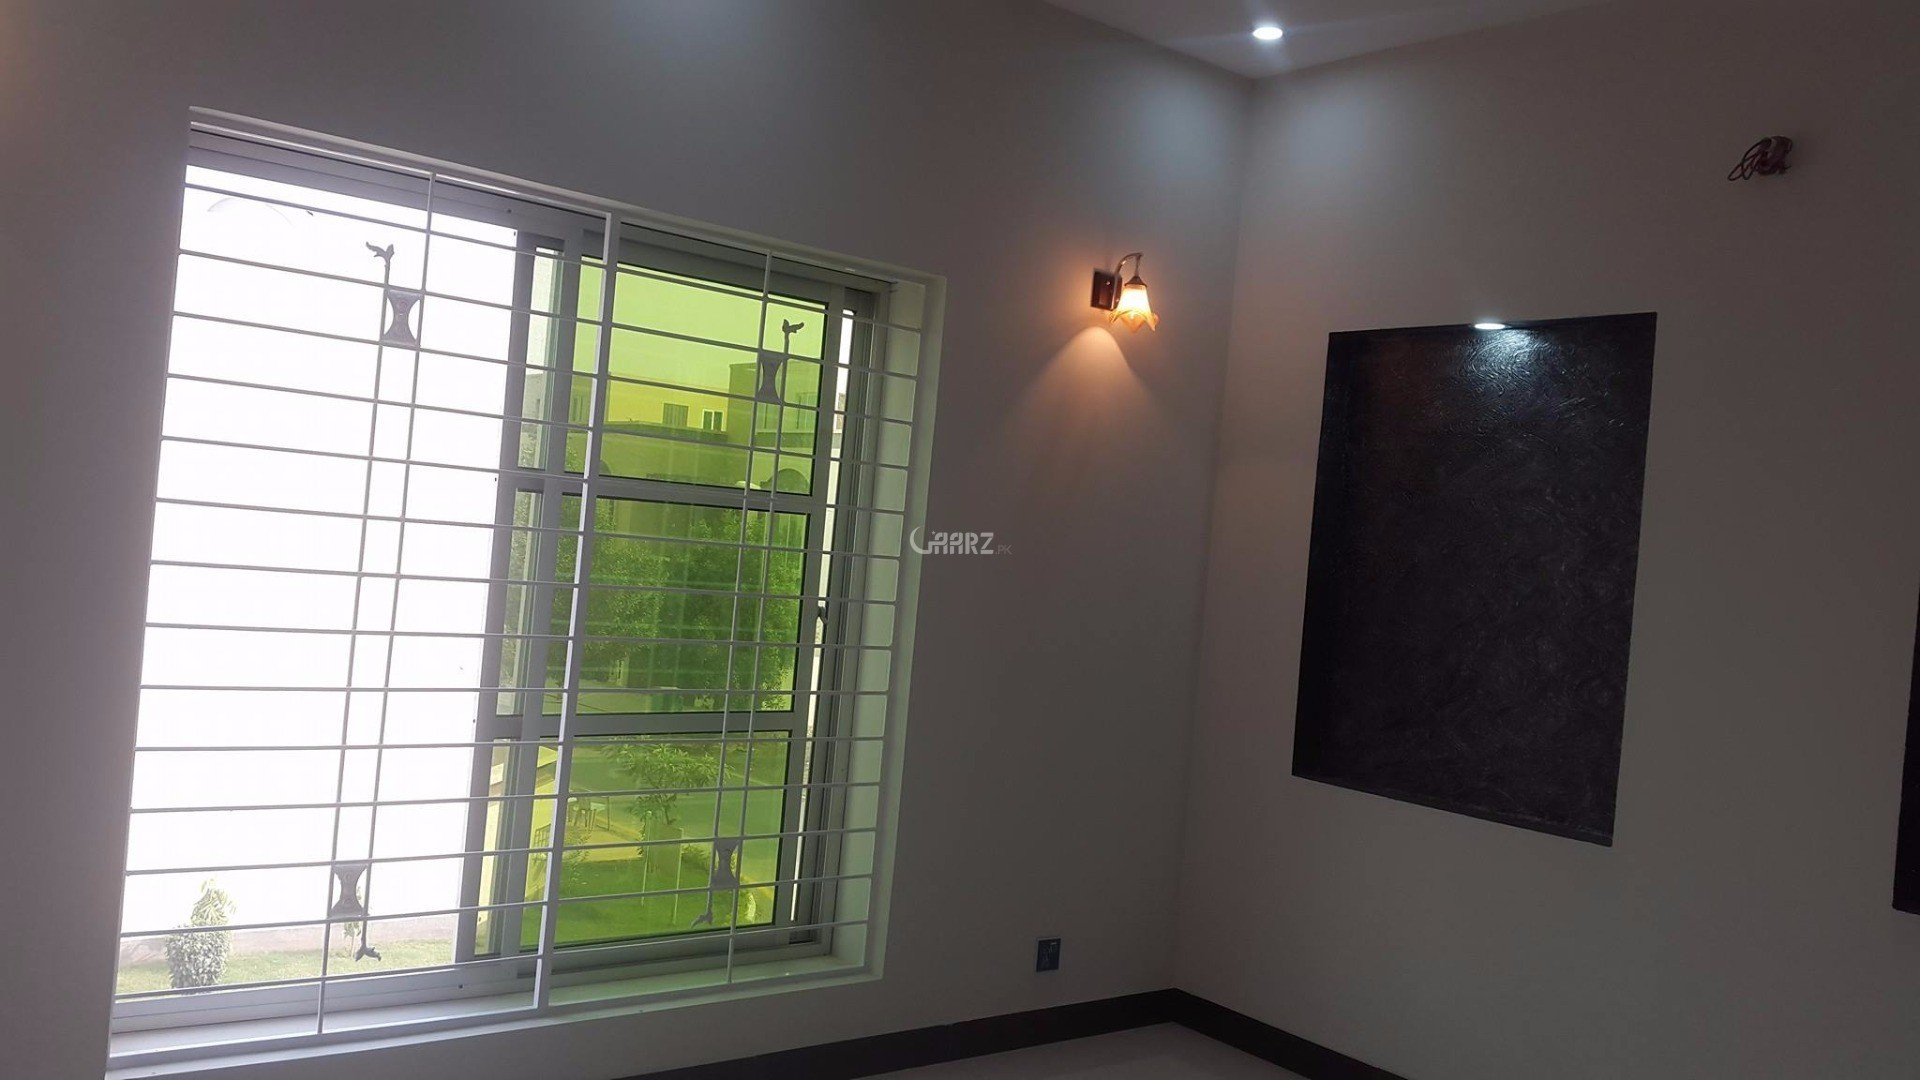 6 Marla House For Sale In Dha Phase 3 Lahore Aarz Pk